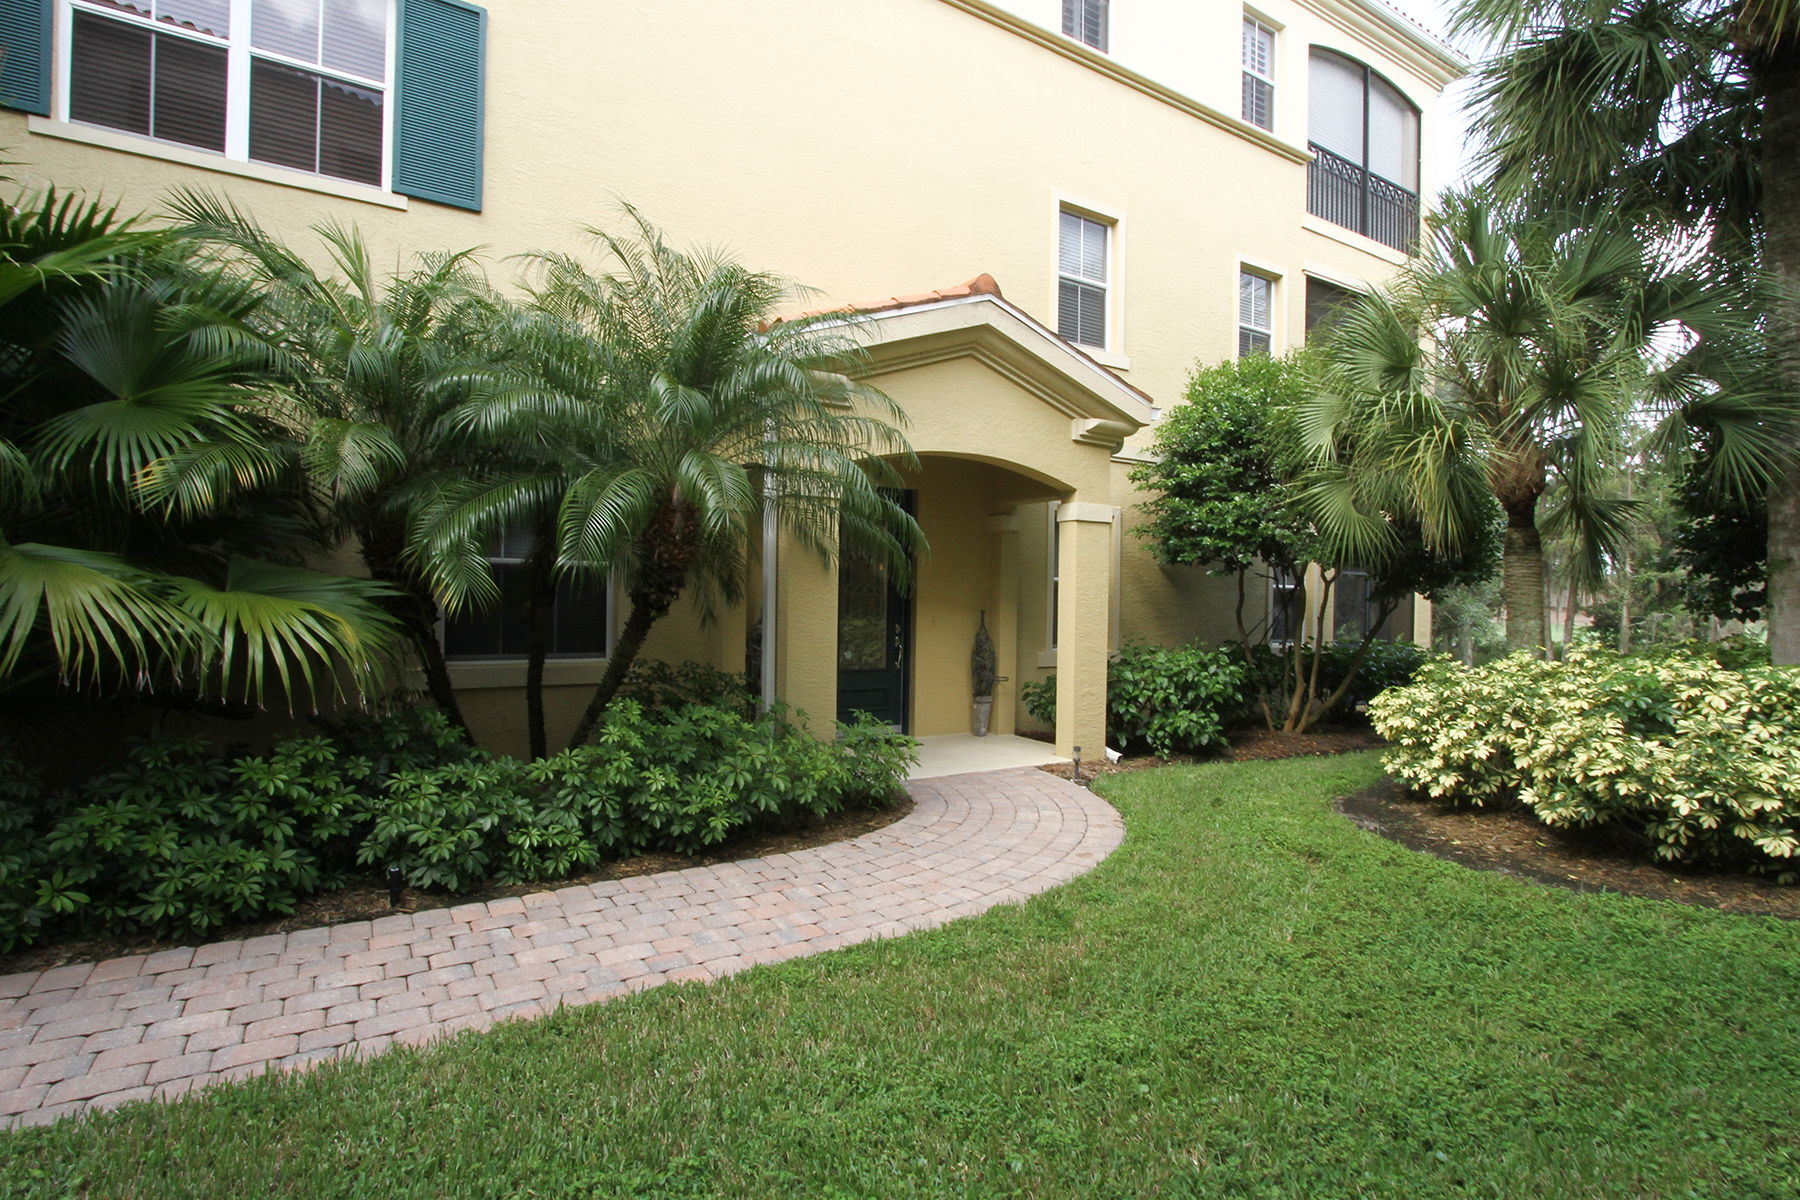 Condominium for Rent at TIBURON - CASTILLO 2830 Tiburon Blvd E 101, Naples, Florida 34109 United States